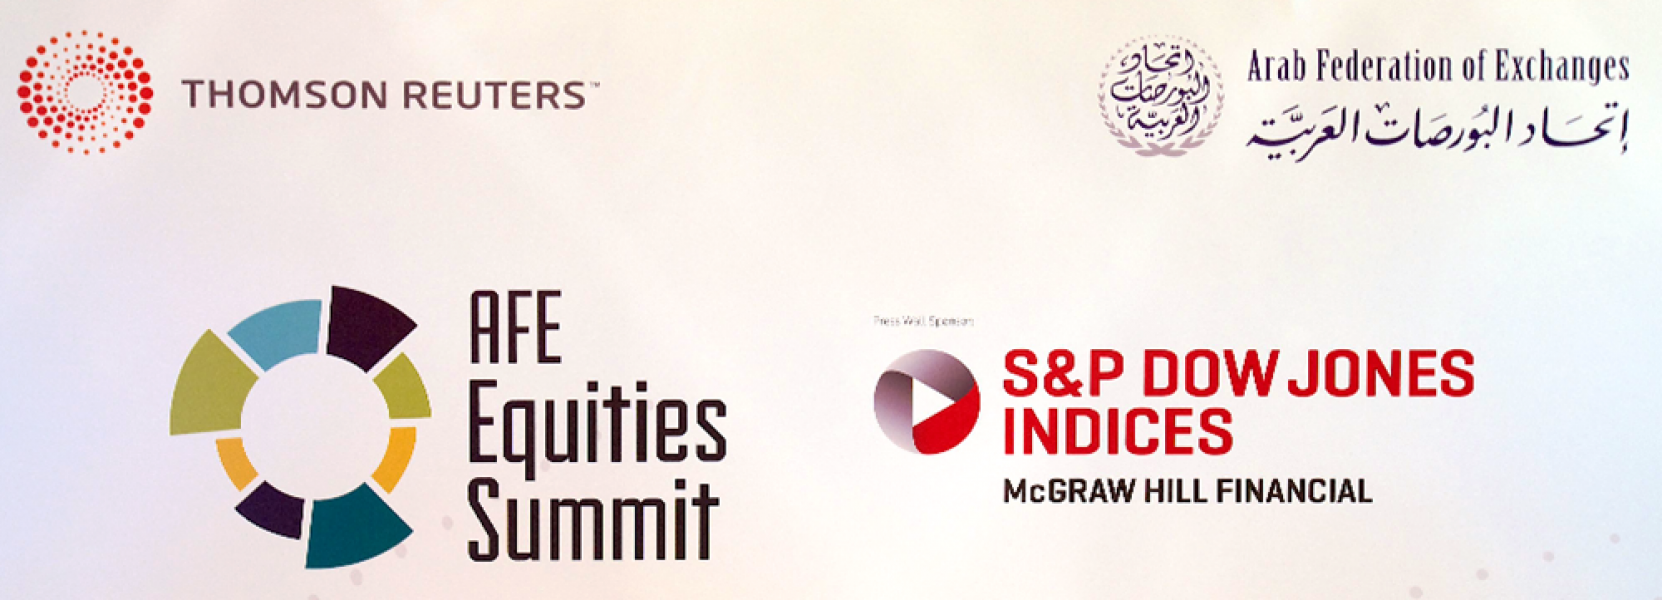 The-AFE-Organizes-the-AFE-Equities-Summit-2014""